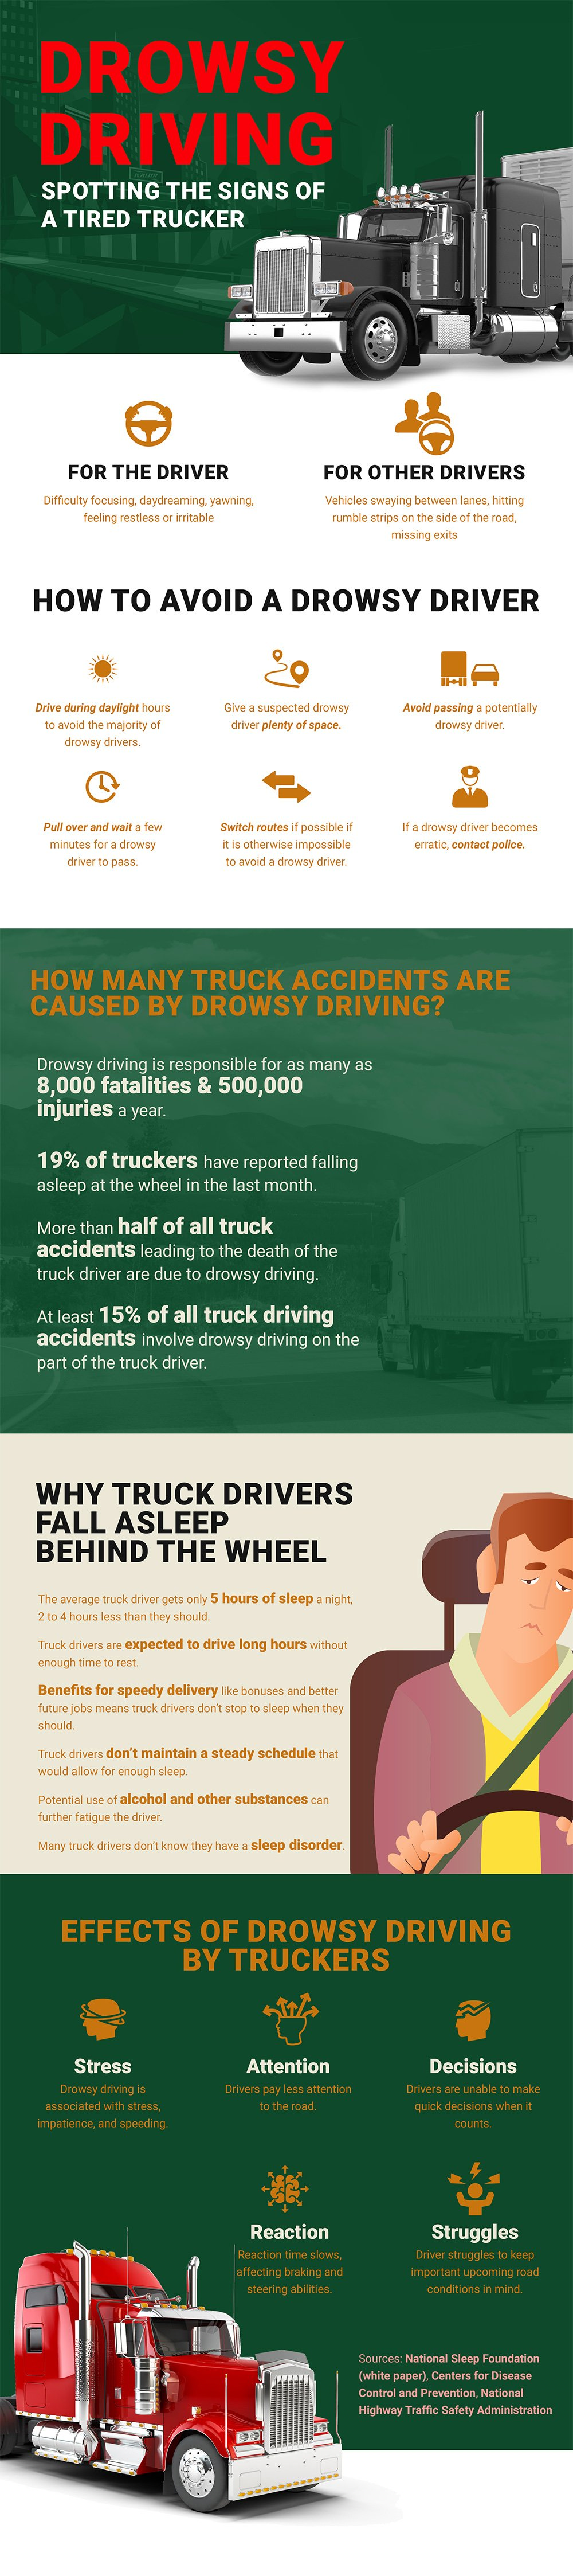 Drowsy Driving: Spotting the Signs of a Tired Truck Driver